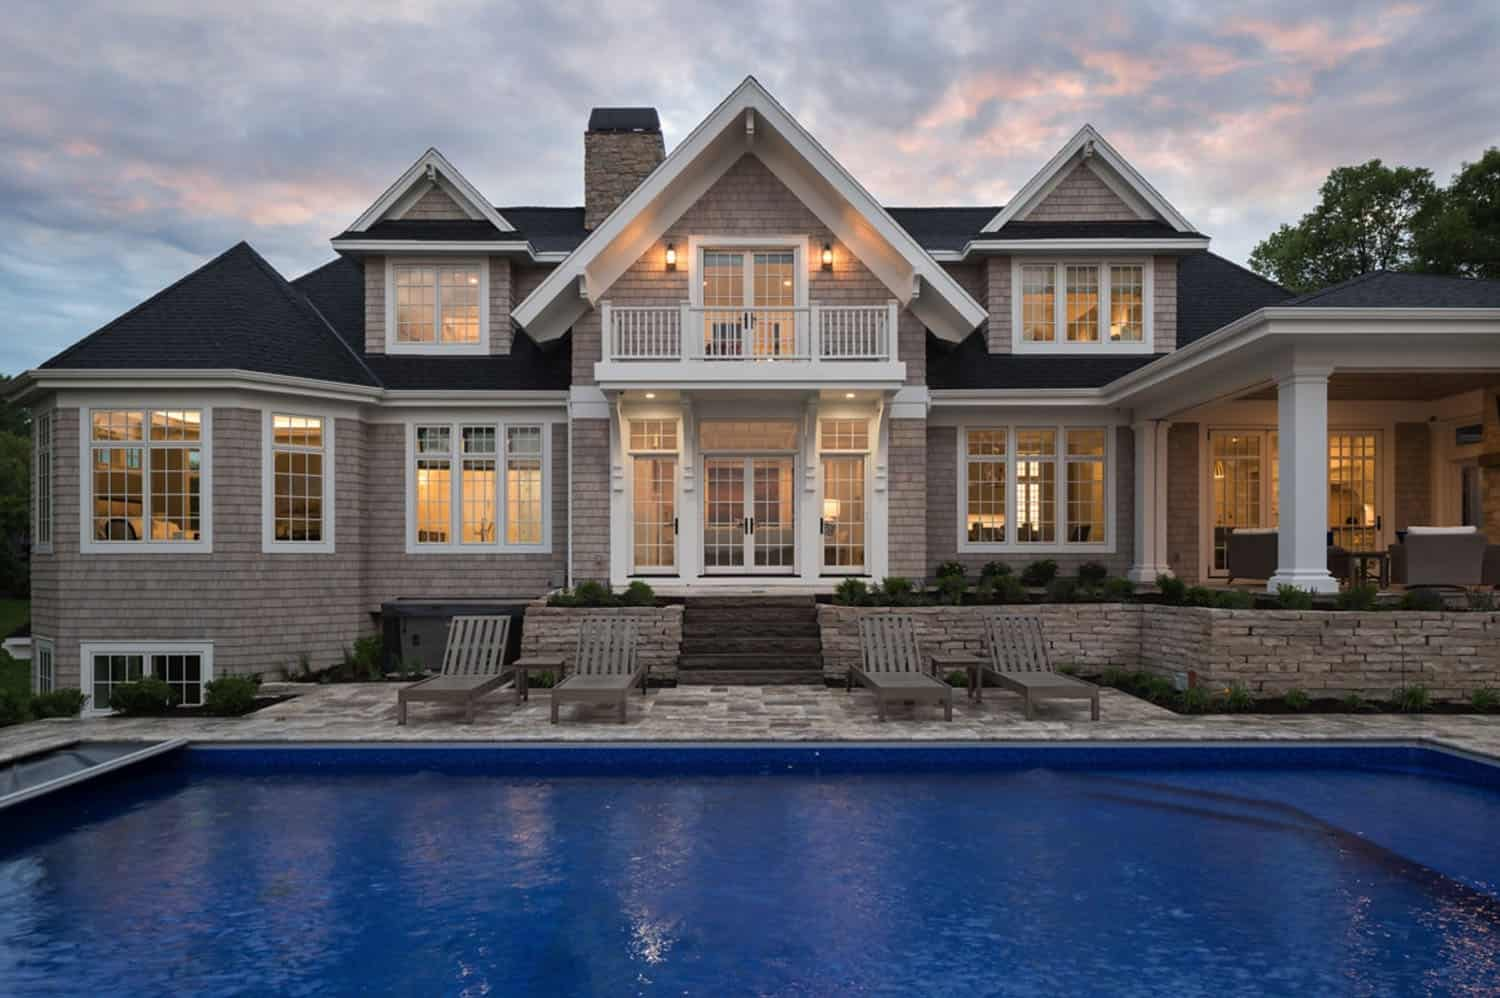 Breathtaking coastal lake home captures views of Lake Minnetonka